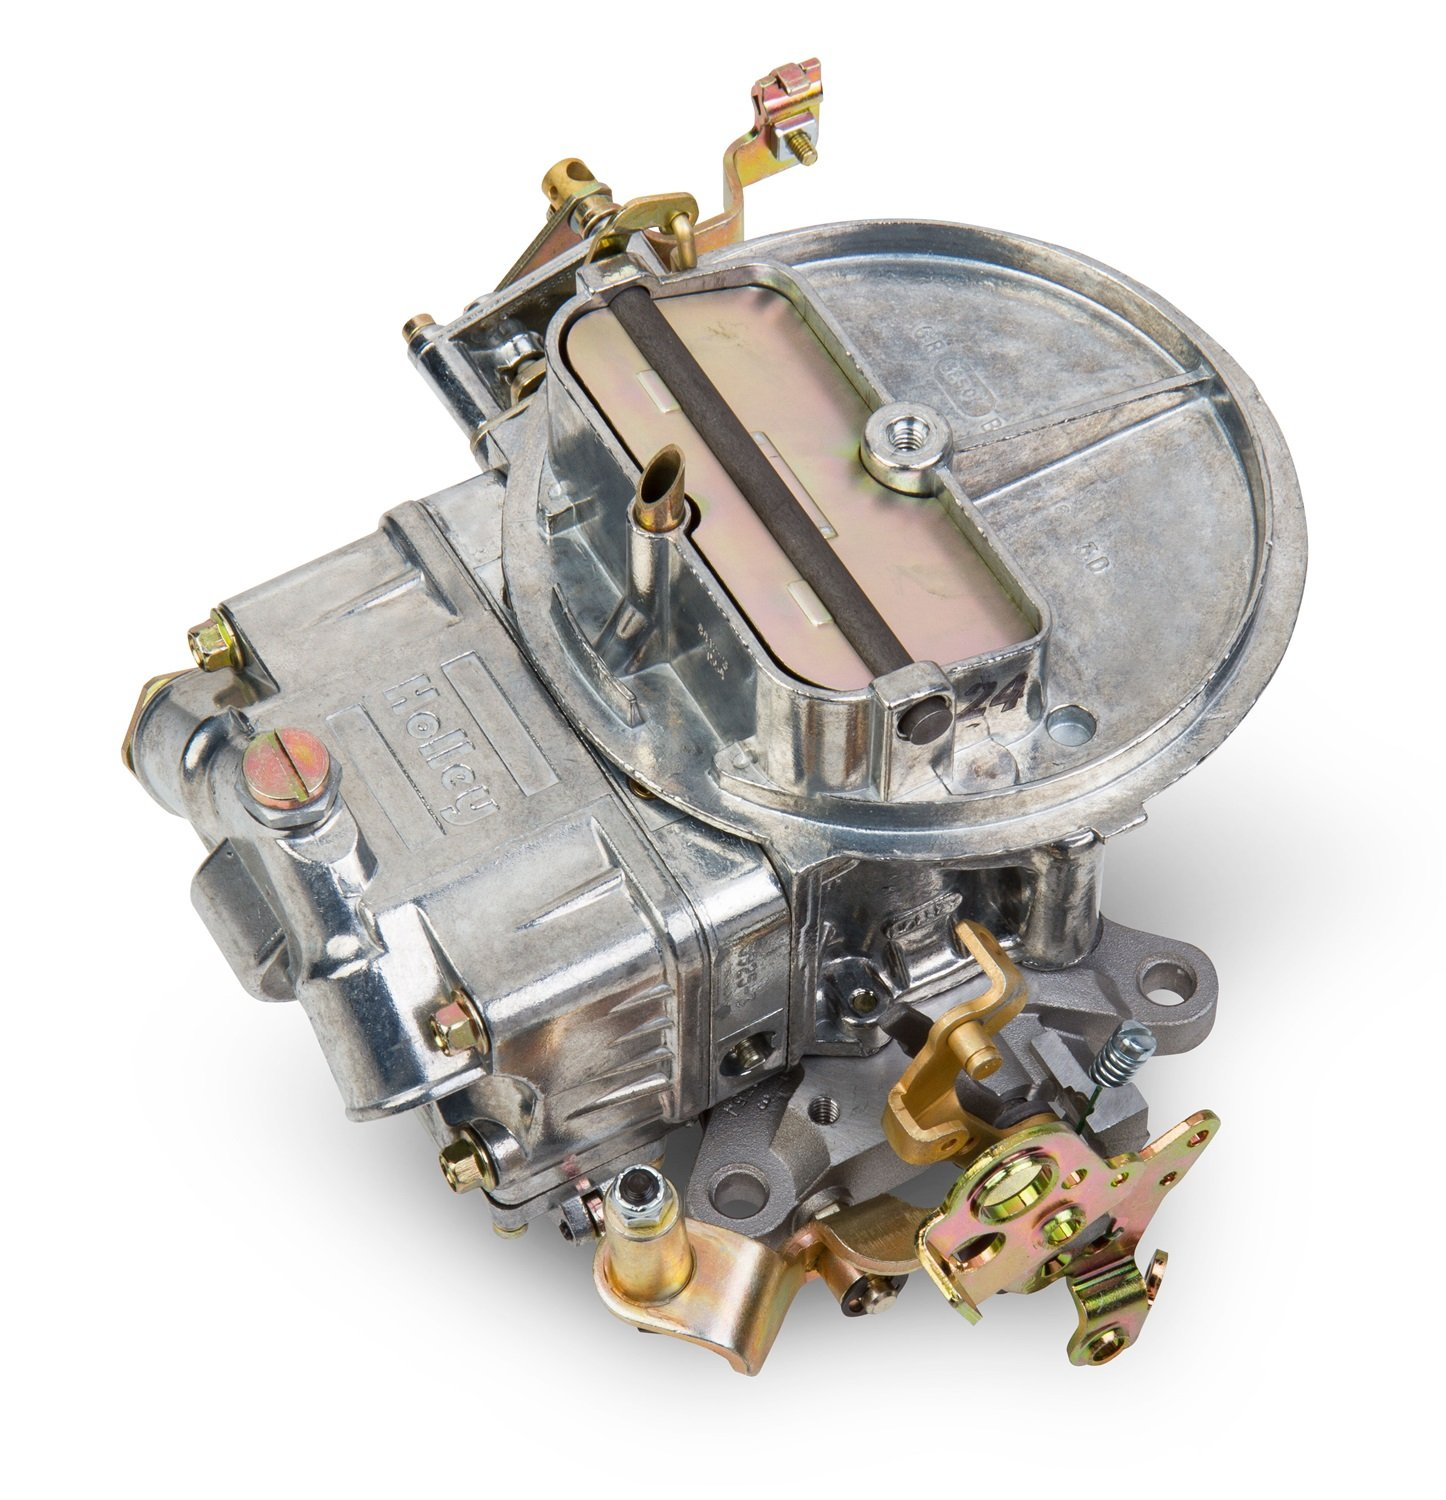 Holley HOL 0-4412S 0-4412S Model 2300 500 CFM 2-Barrel Manual Choke New Carburetor